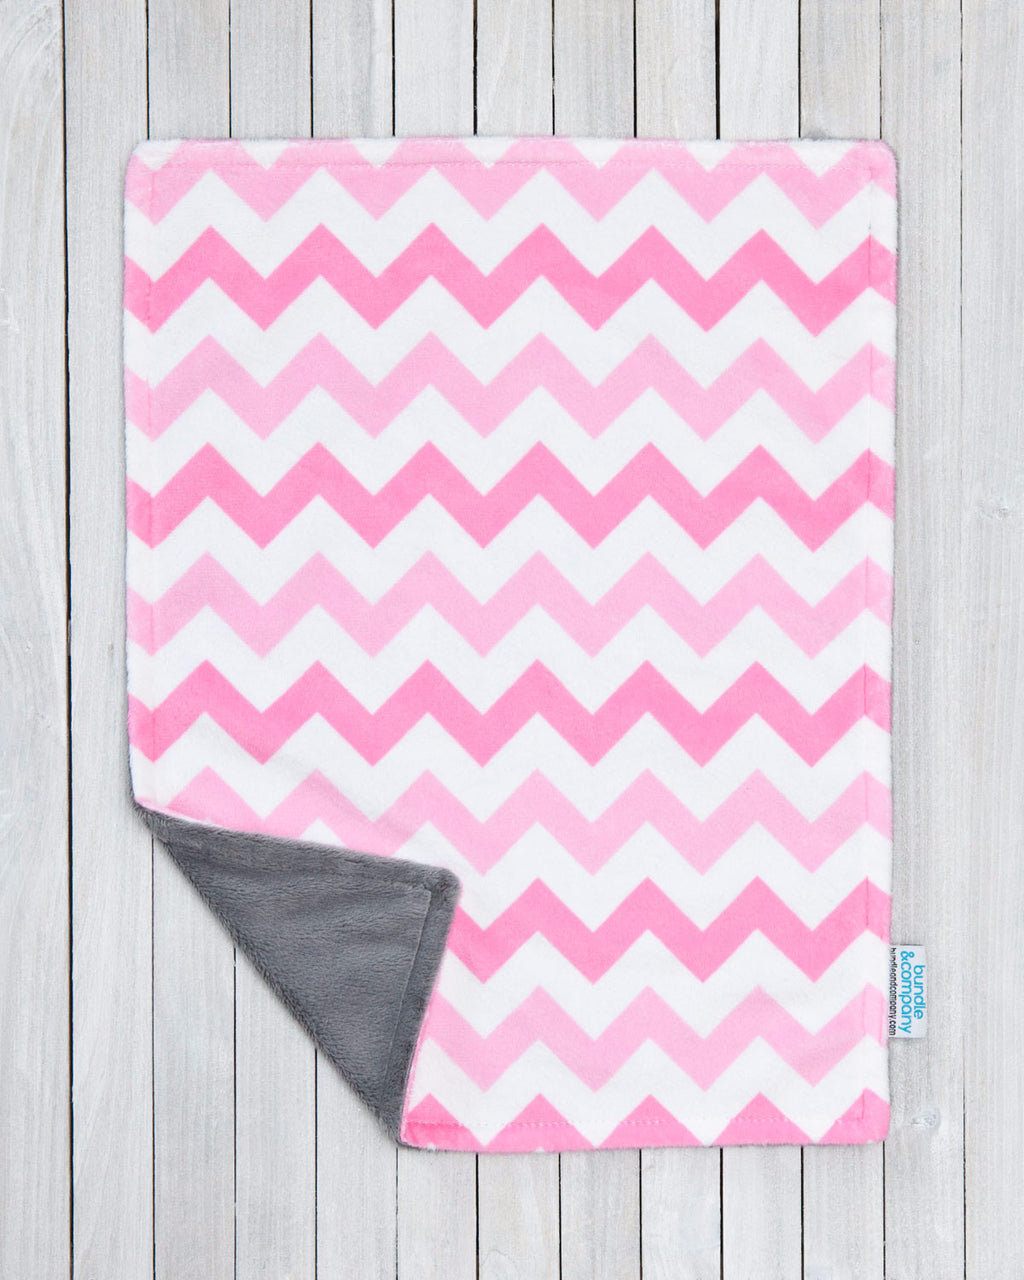 Minky Baby Snuggle Blanket - Pink Chevron